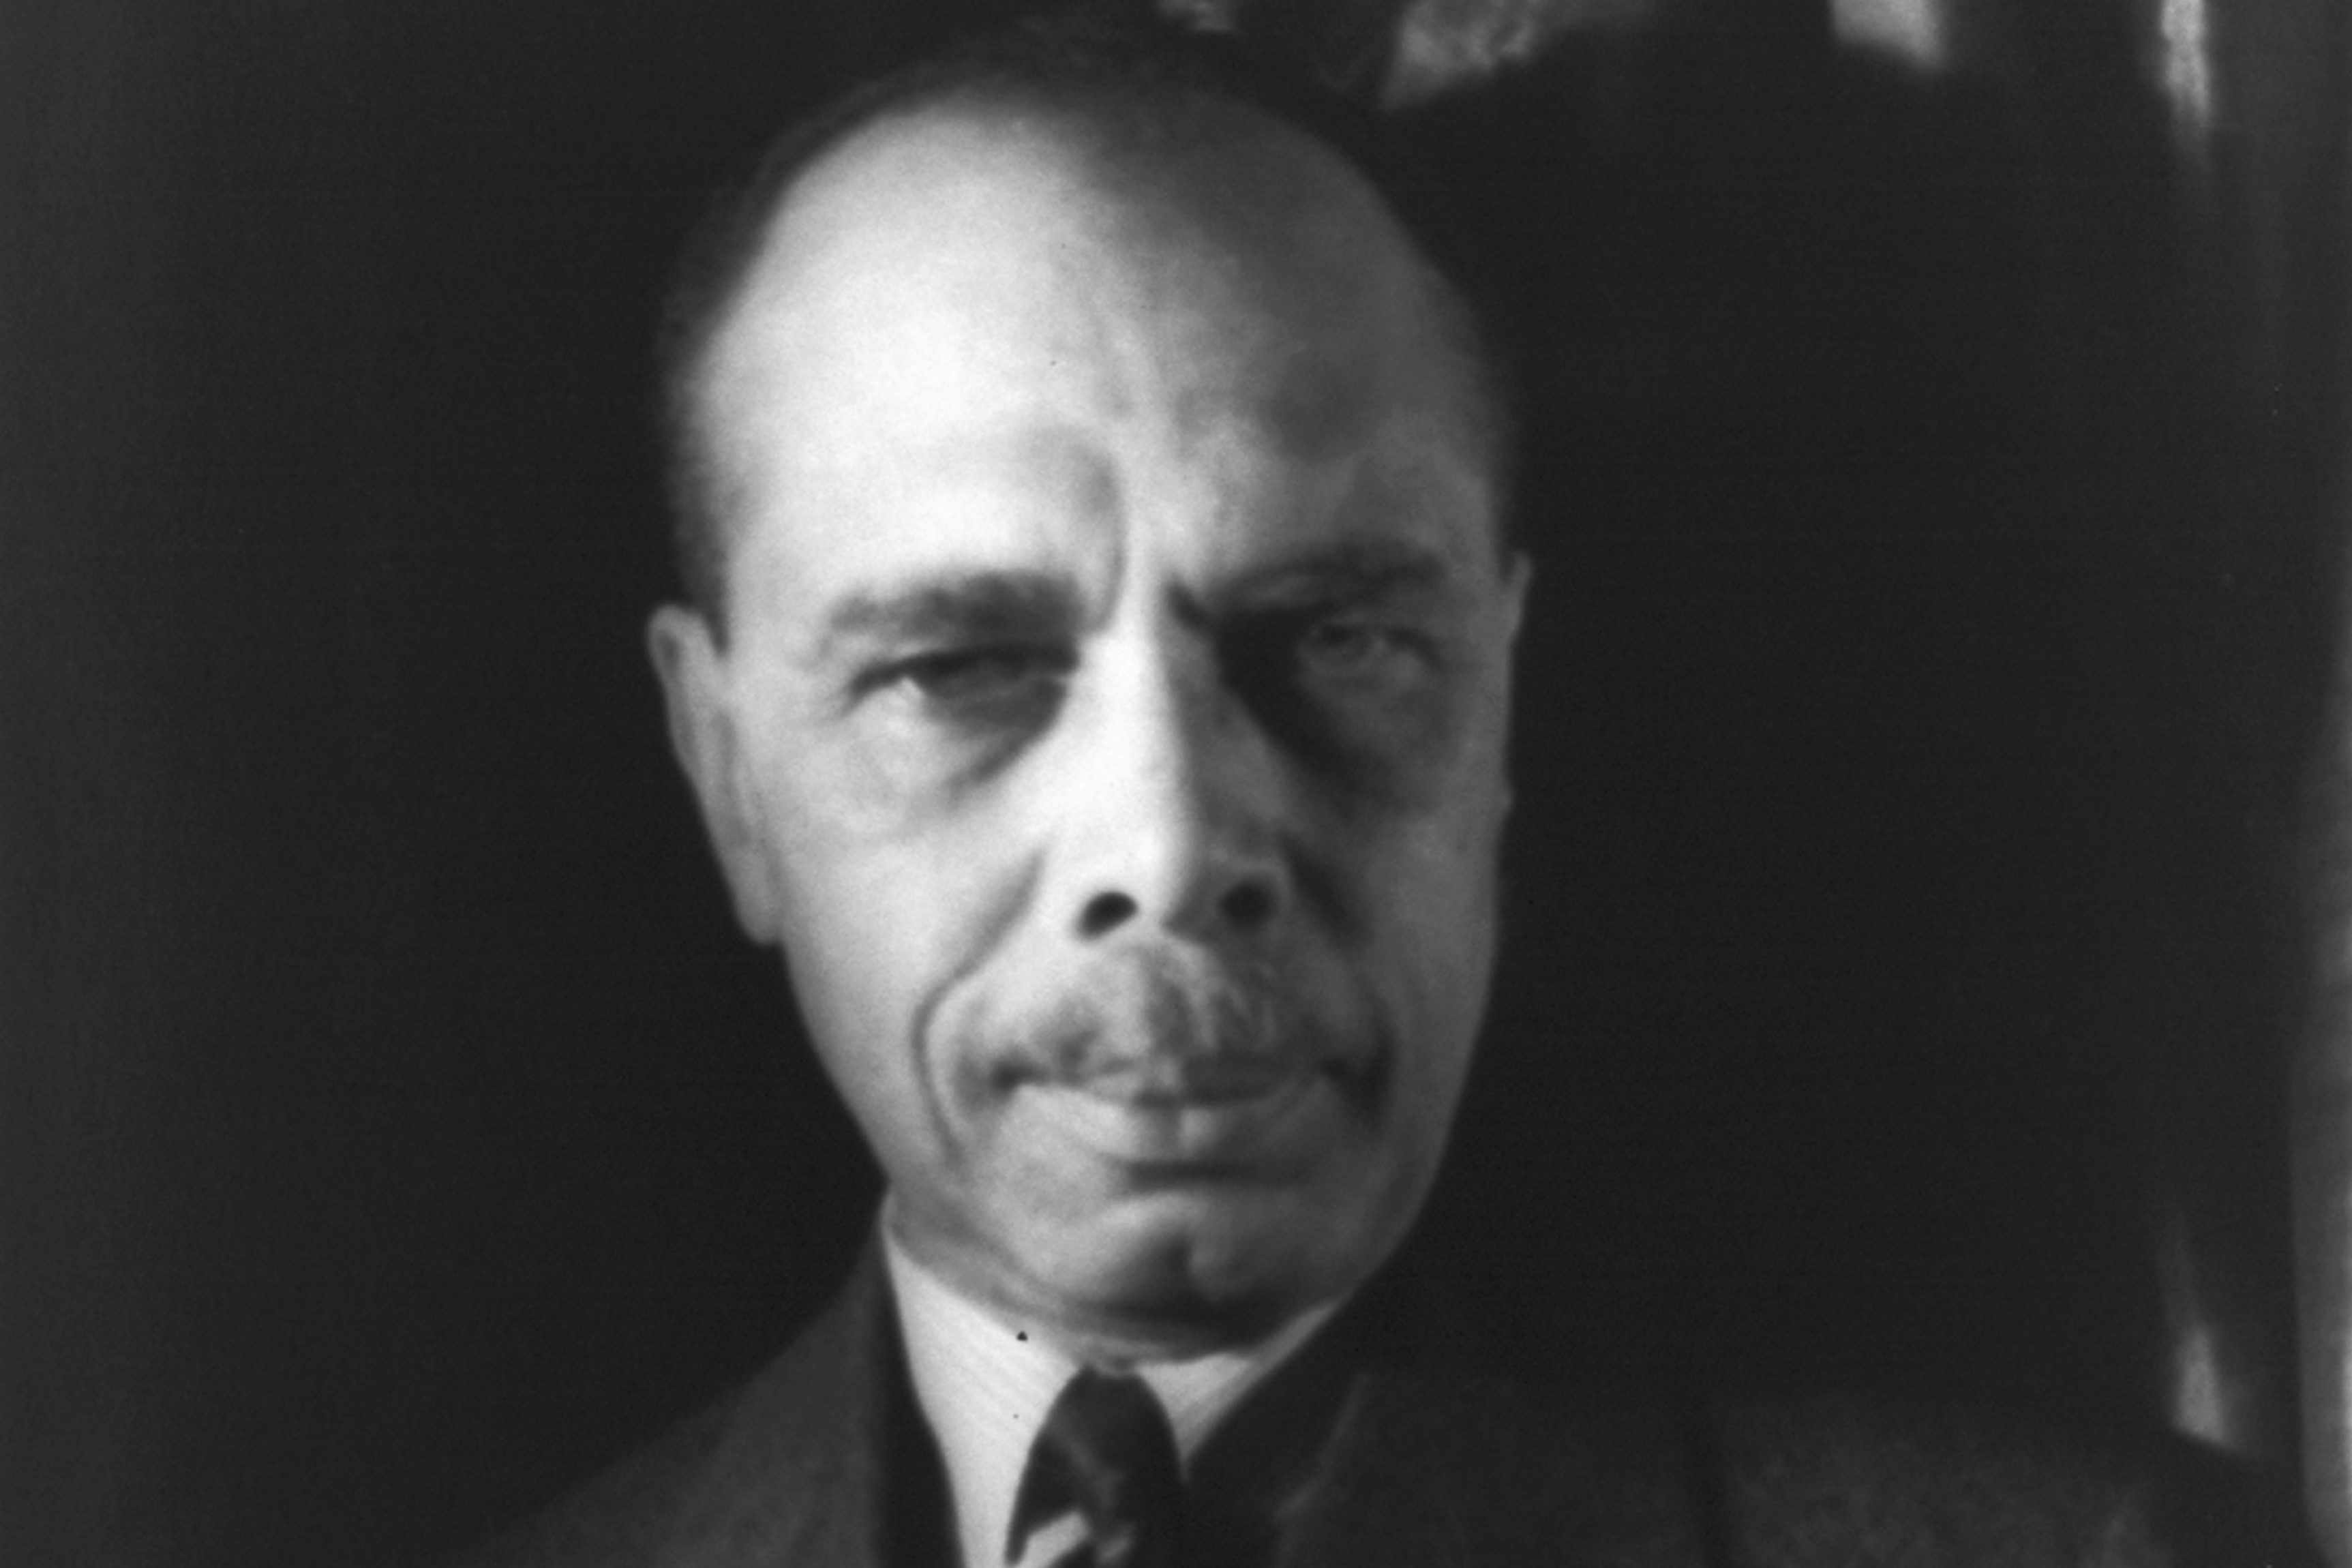 James Weldon Johnson with a serious expression on his face